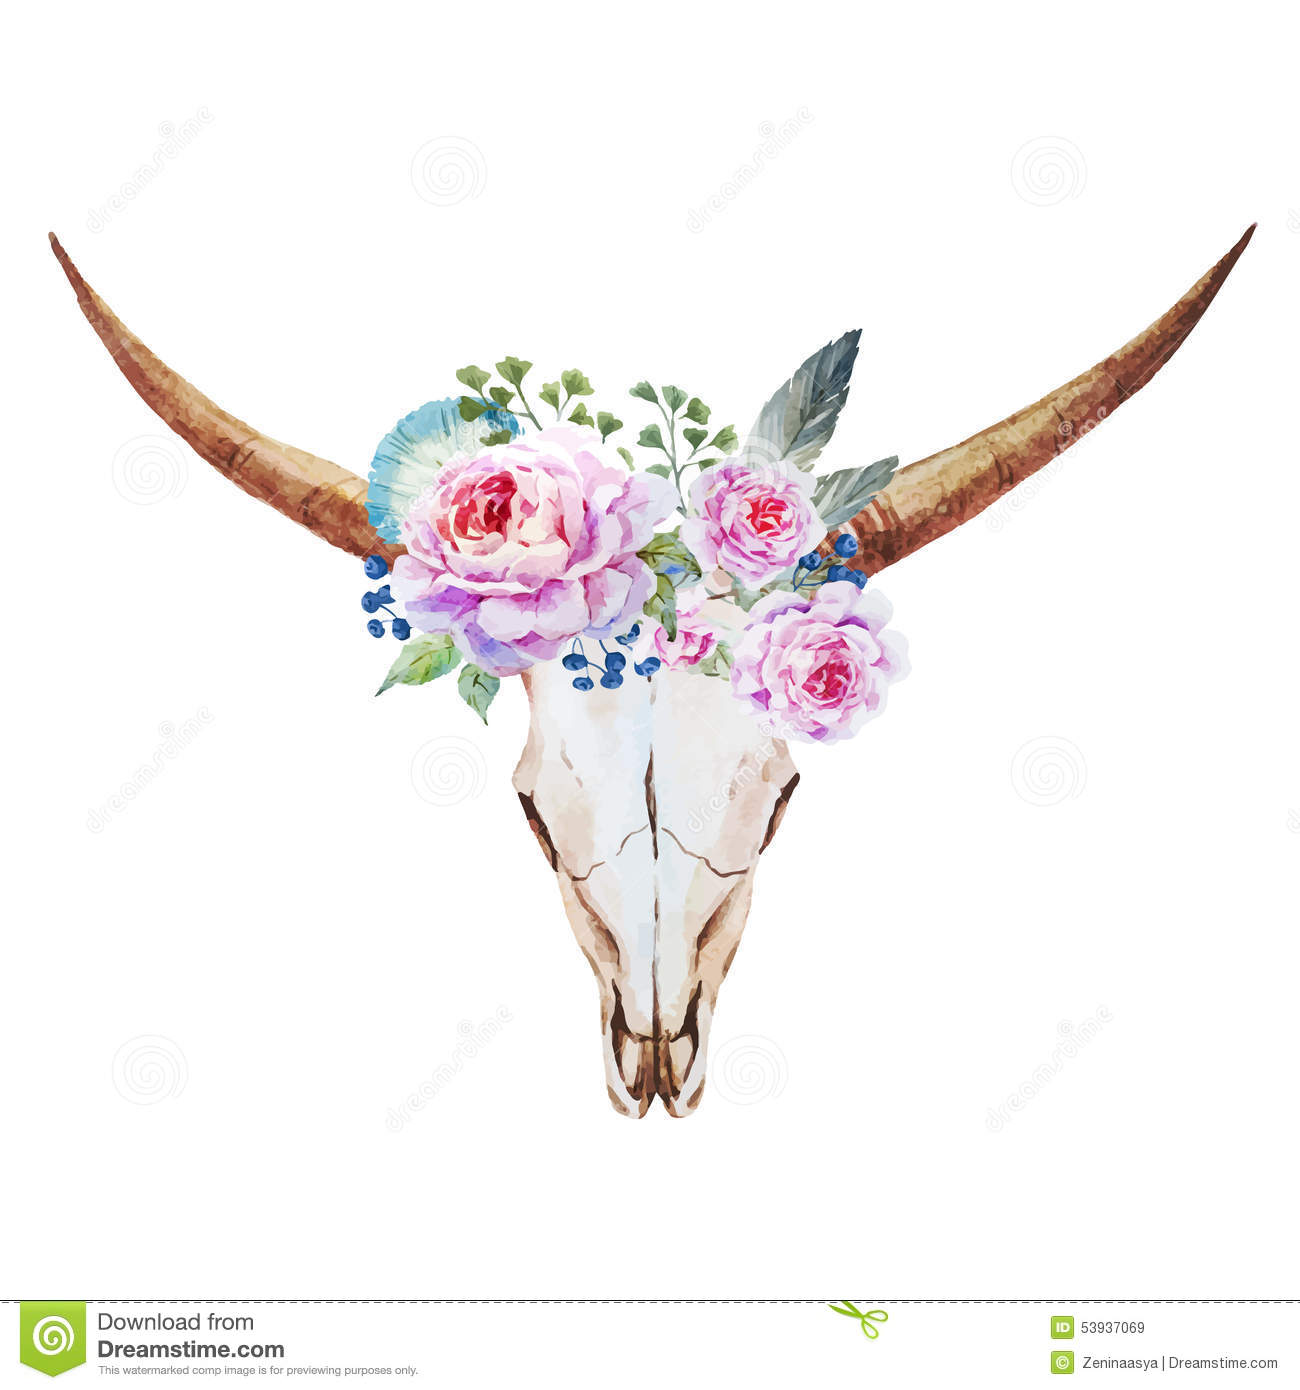 Cow Wall Stickers Bull Skull Watercolor Stock Vector Illustration Of Emblem